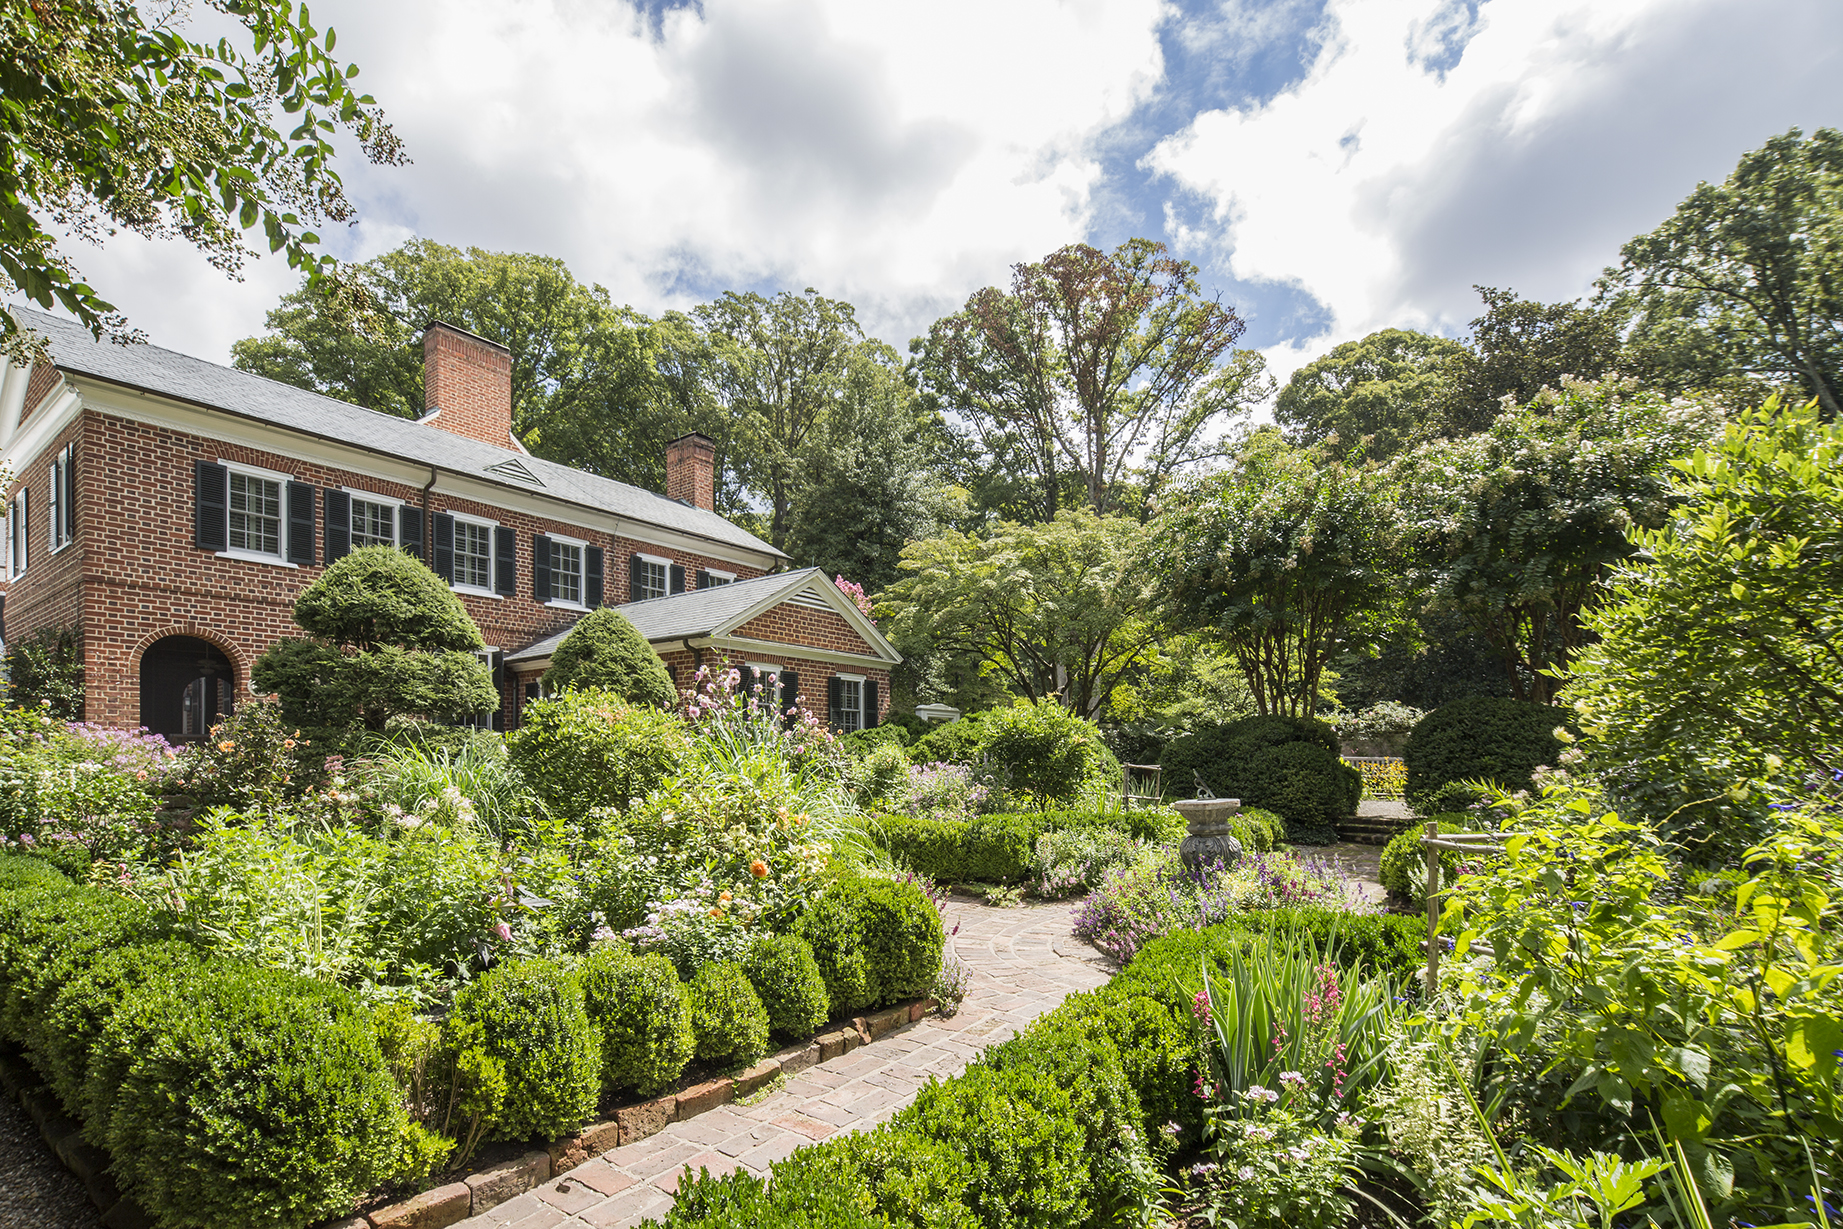 Signature statements of landscape architect Ellen Biddle Shipman's style pepper the garden including:a Chippendale gate, dovecote, garden furniture, and privacy walls that don't compromise the natural setting.